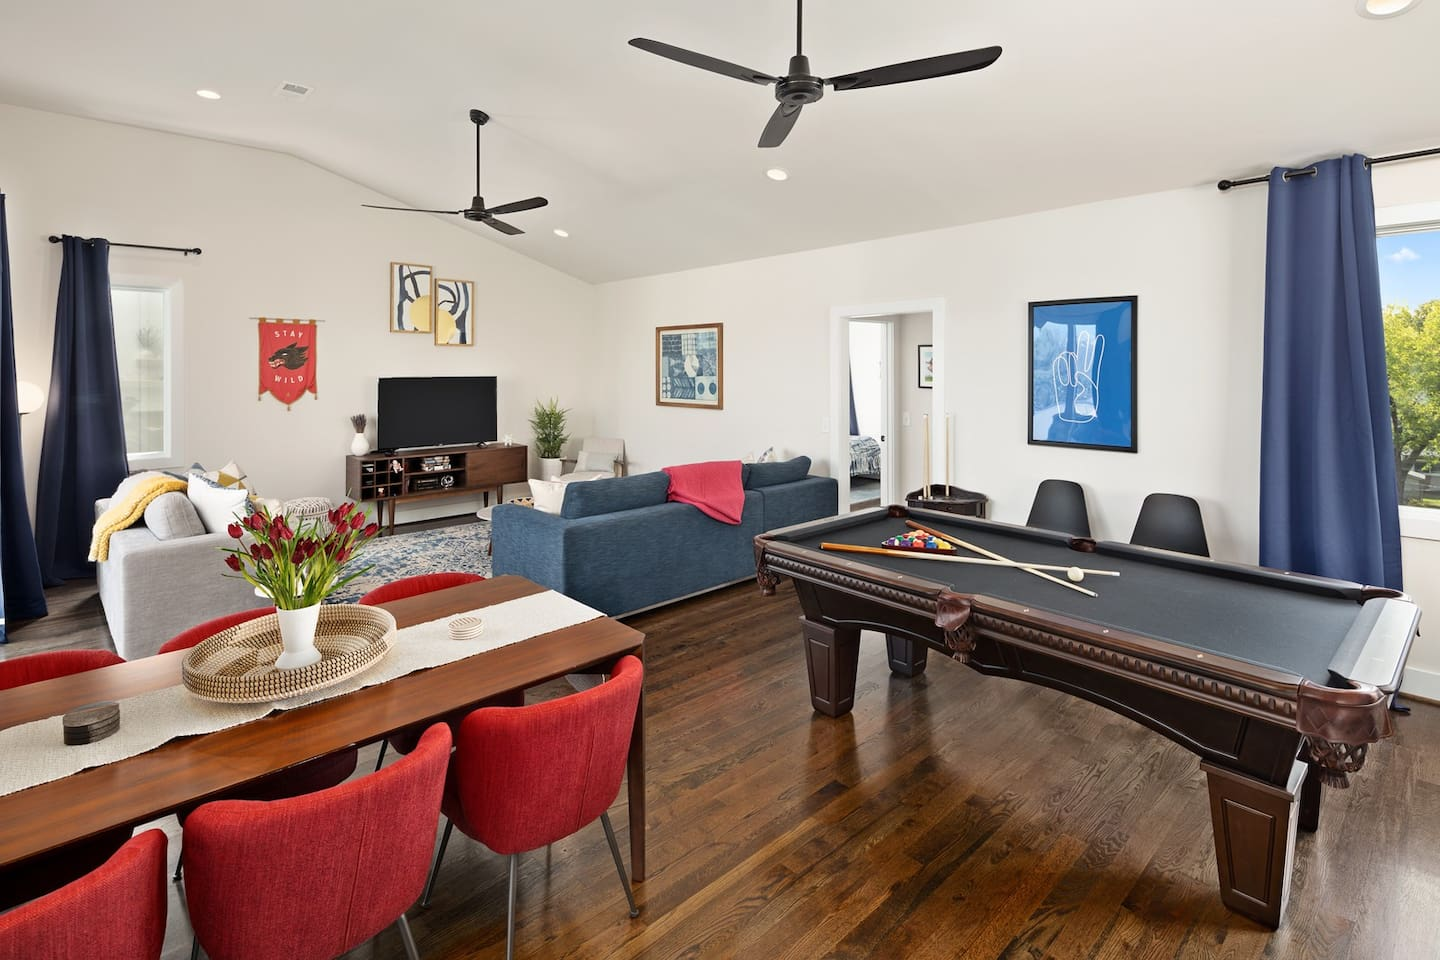 The third floor is a my favorite place in the house. Enjoy the pool table, living room, dining area, wet bar, and roof top deck access all from this floor. A 3rd floor bedroom with 2 queen beds and a full bath are set towards the back of the space.